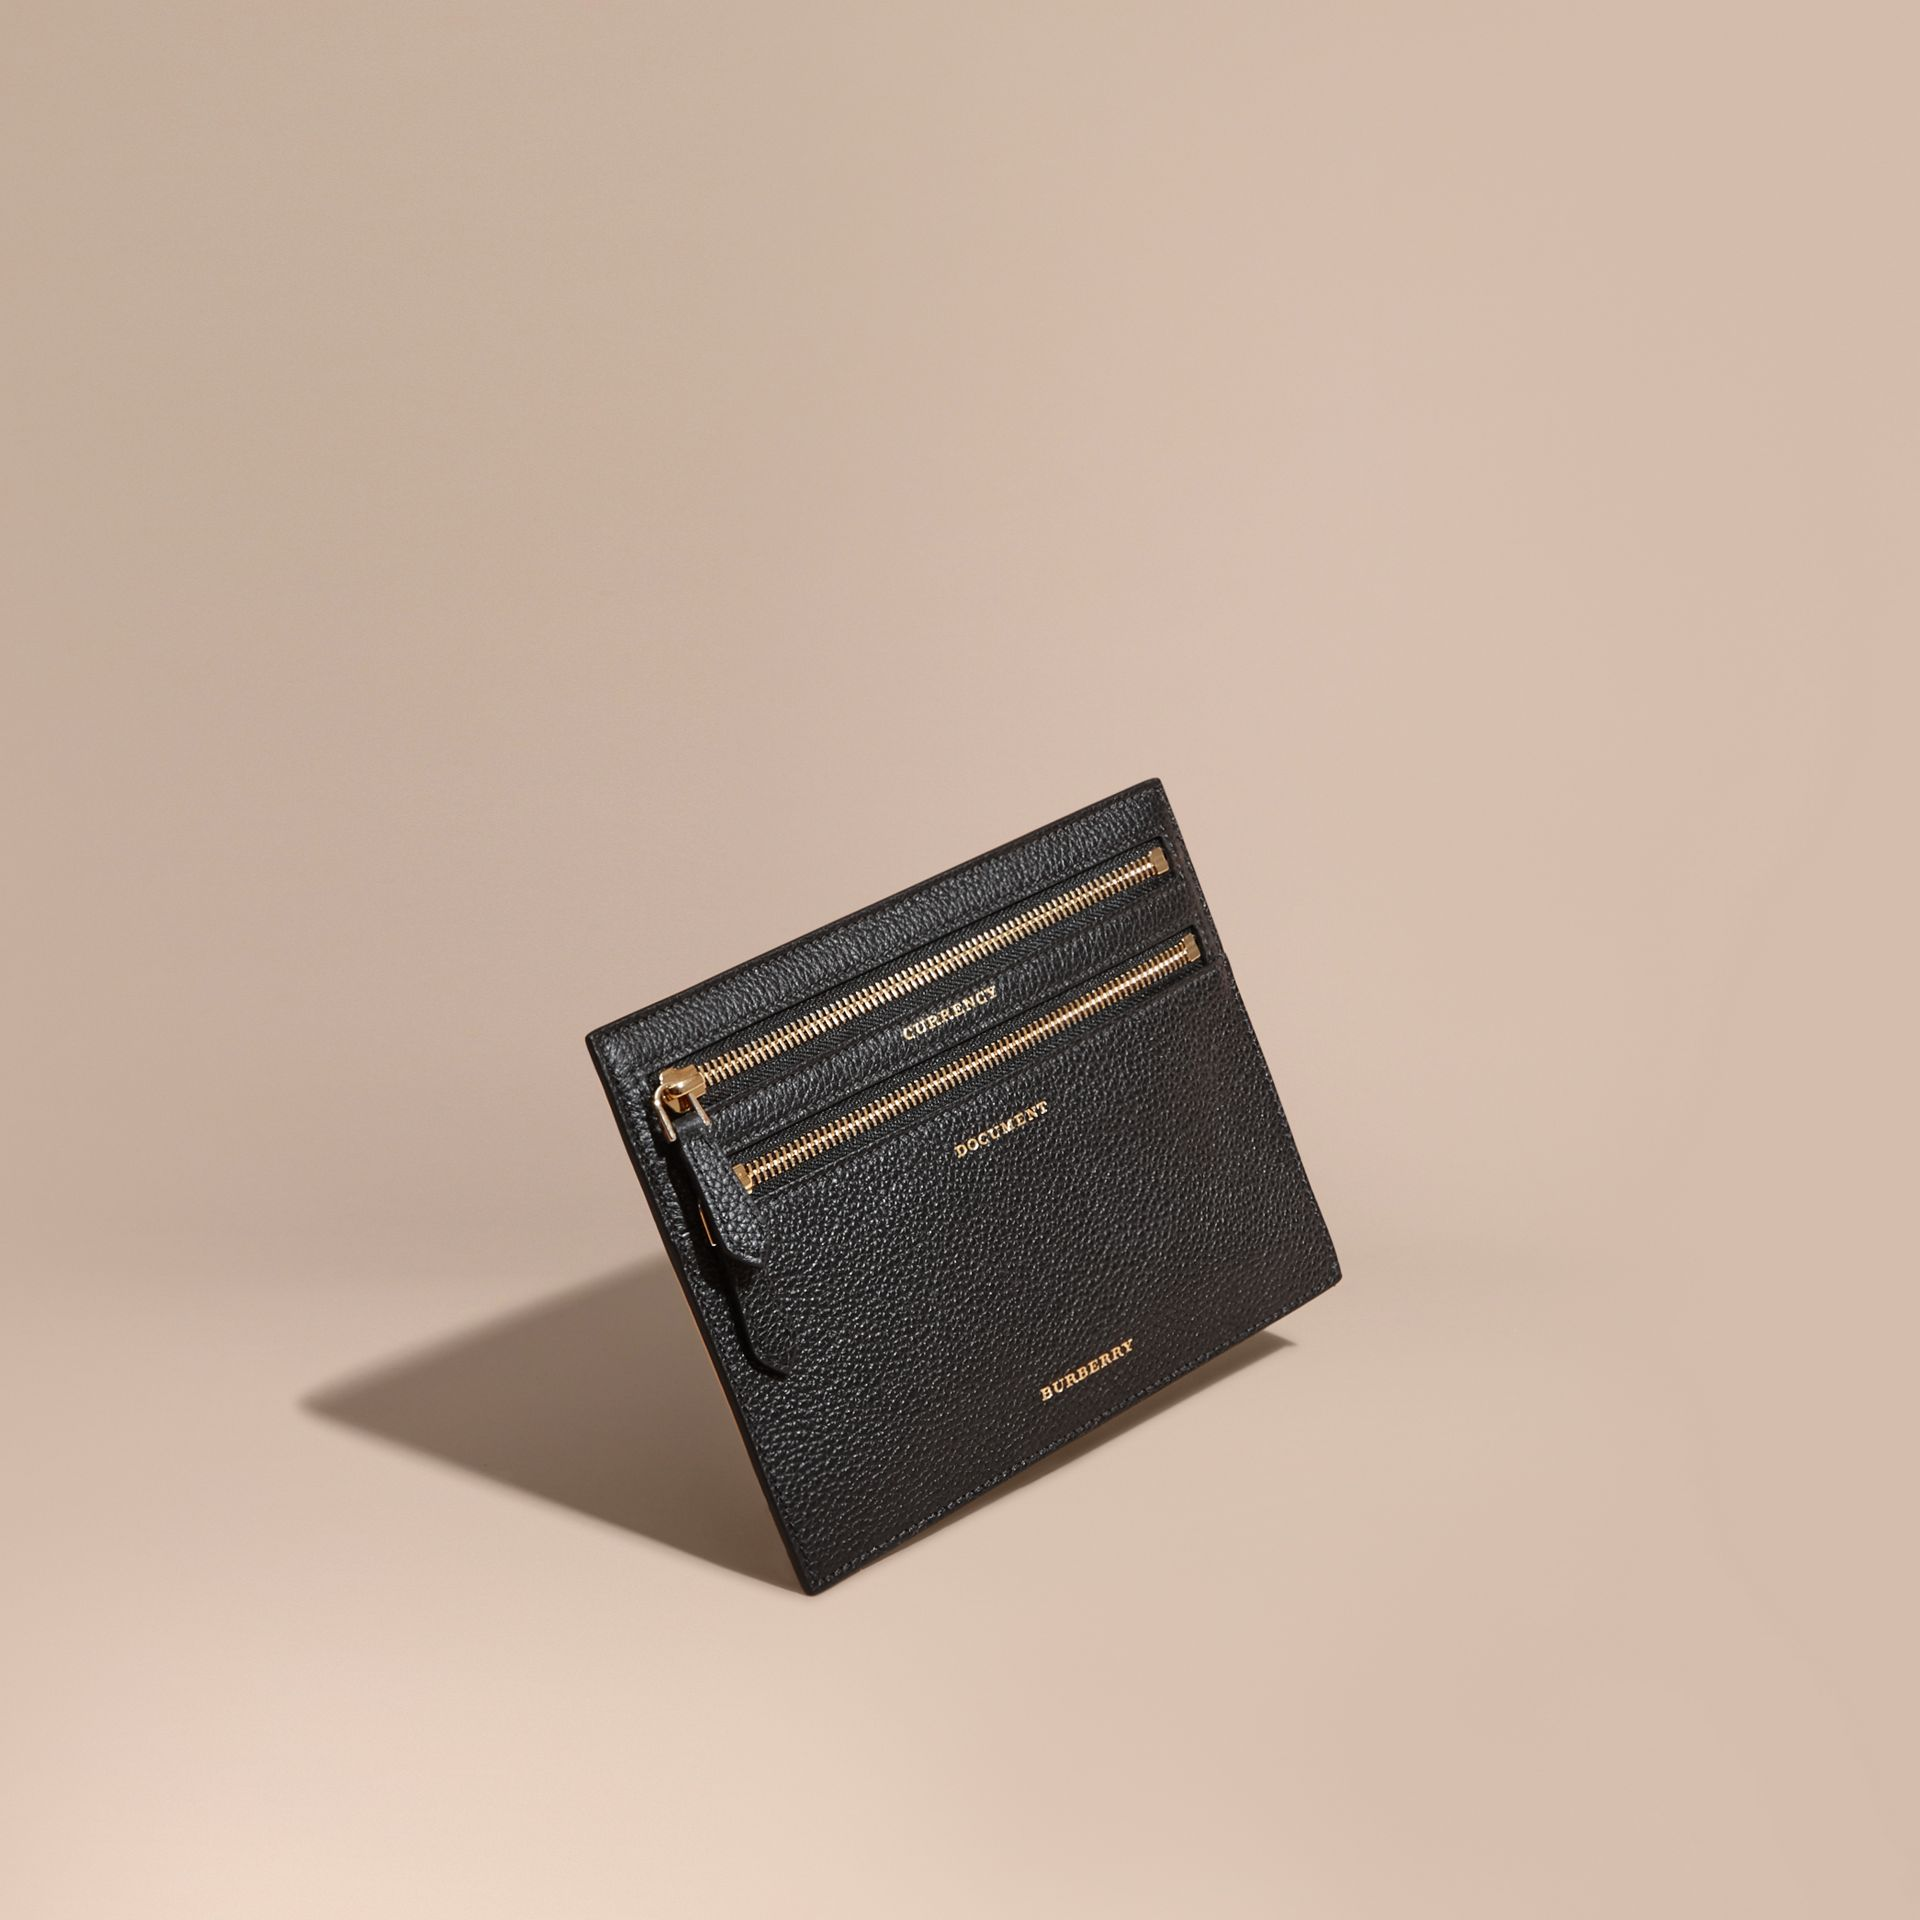 Grainy Leather Currency Wallet in Black | Burberry - gallery image 1